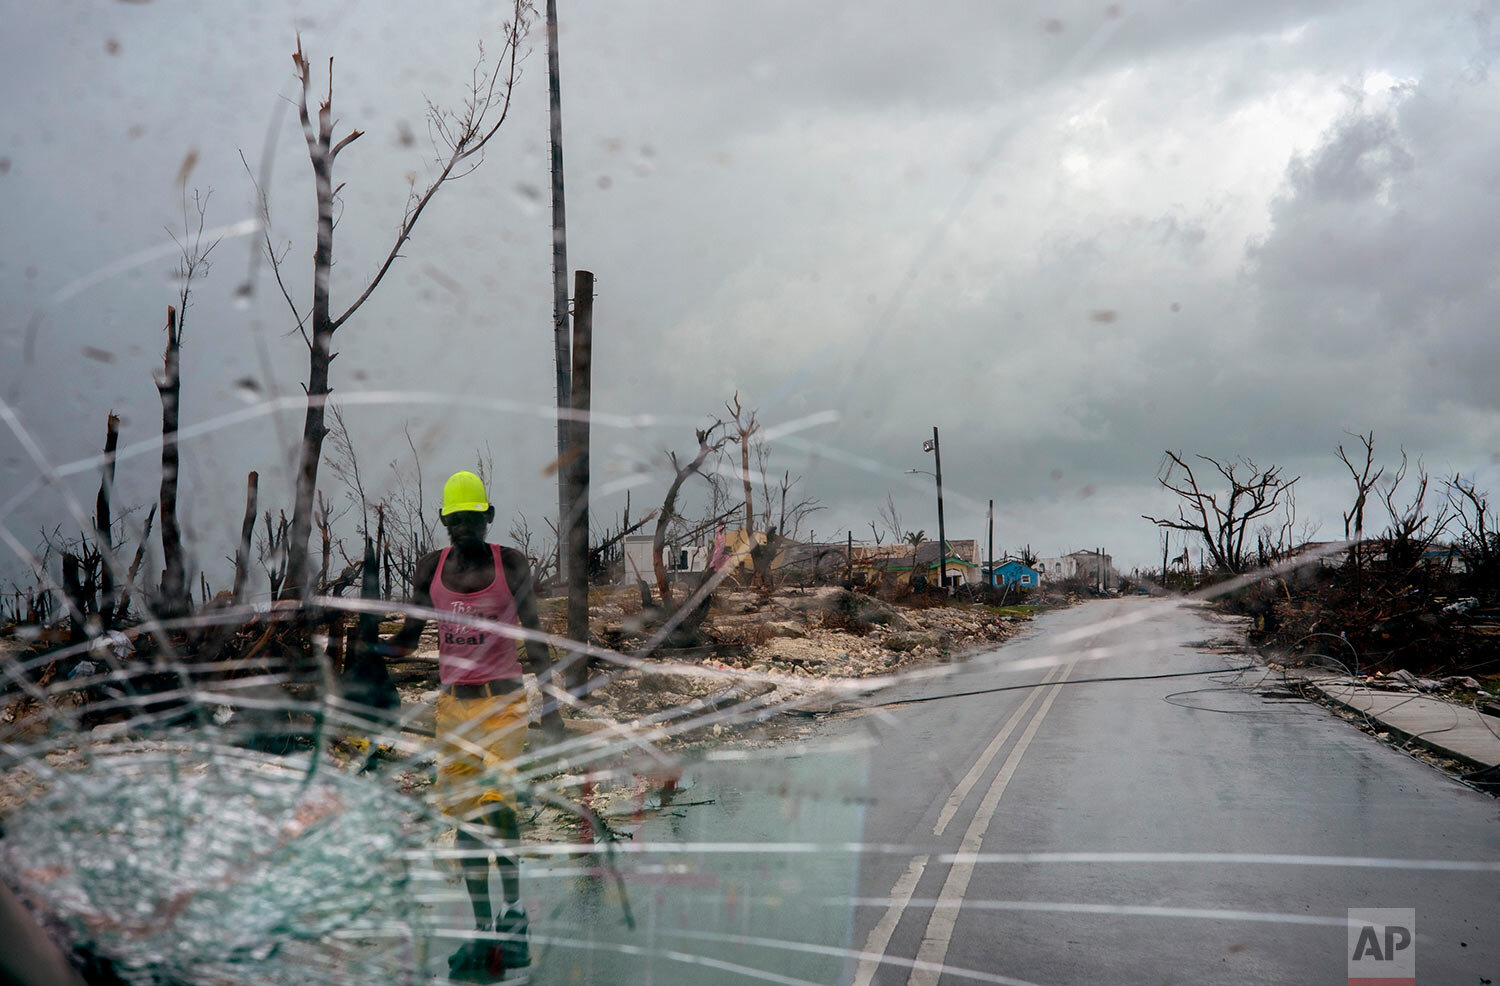 Trees destroyed by Hurricane Dorian line a road as a man walks by, in Abaco, Bahamas, Monday, Sept. 16, 2019. (AP Photo/Ramon Espinosa)